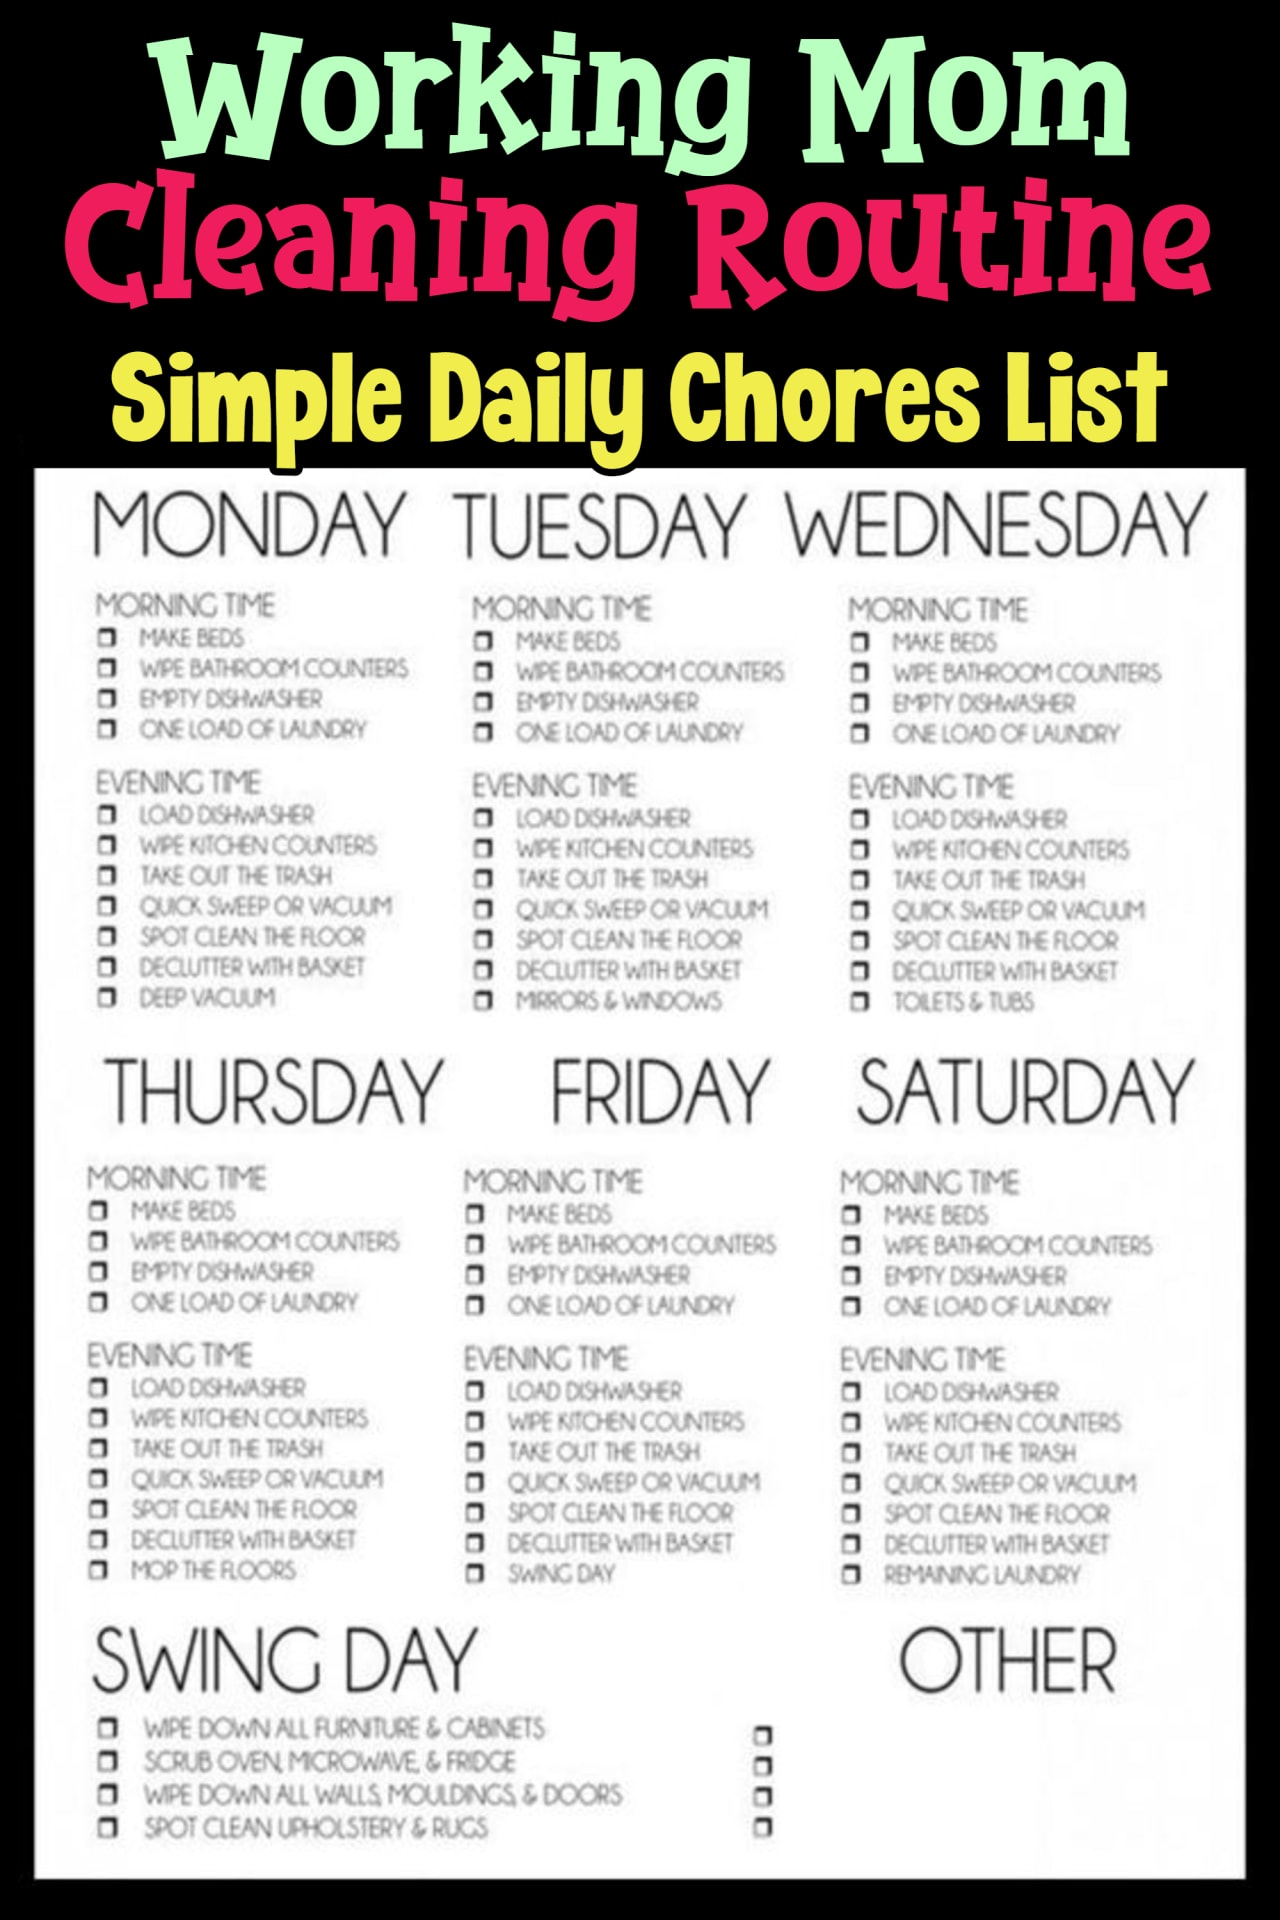 Working mom cleaning routine cna cleaning schedule for working moms or working parents - simple daily chores to do each day and each night to keep your house cleaning - easy cleaning schedules for busy moms - printable cleaning schedule, cleaning checklists and cleaning routines